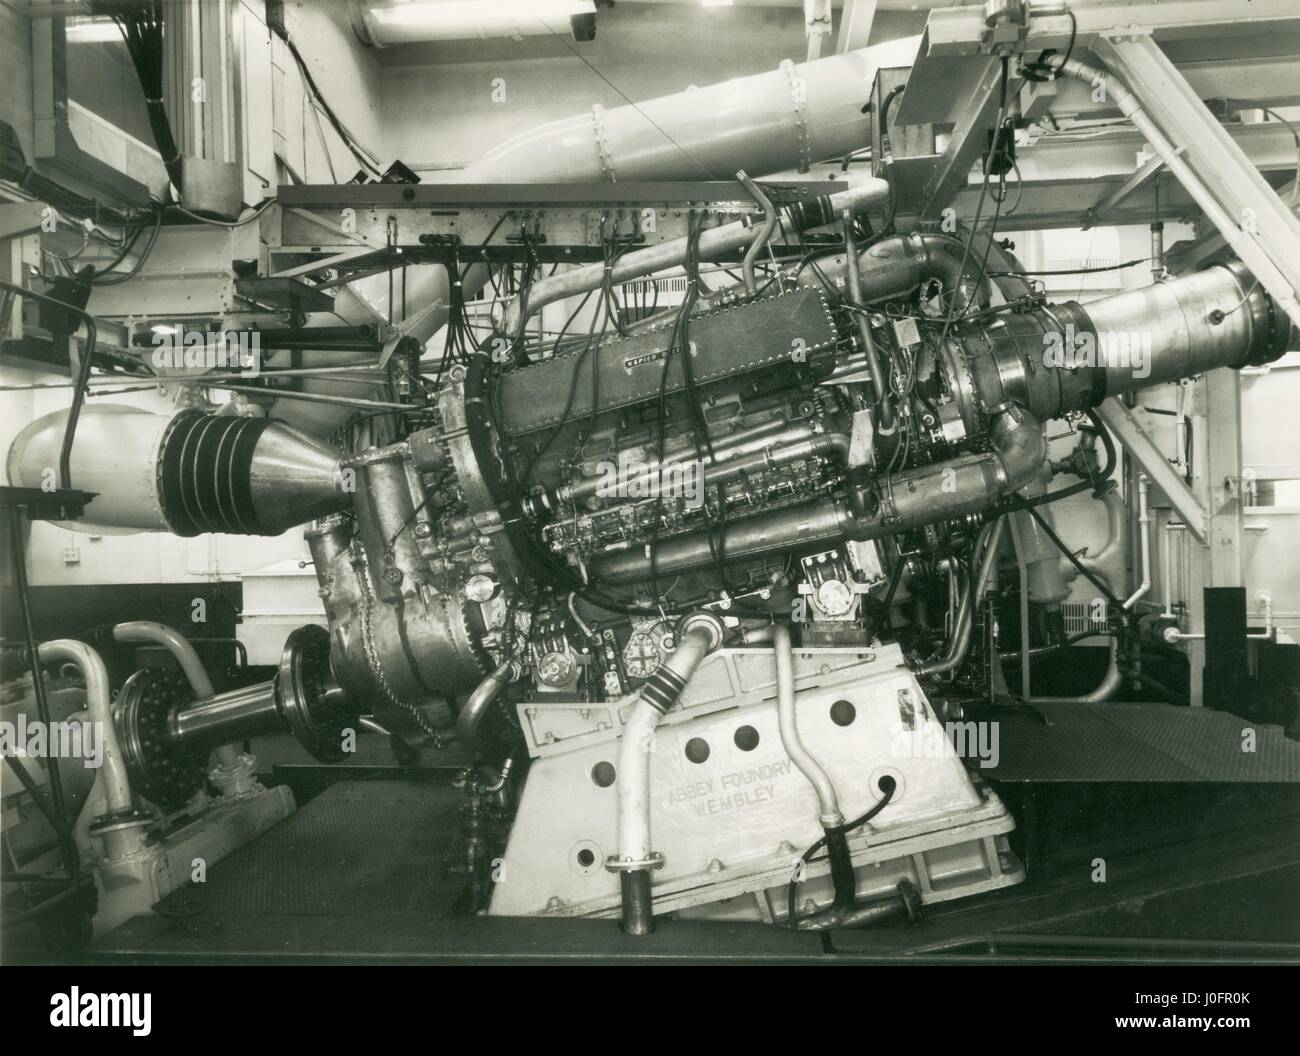 The C18-5 compound Deltic prototype under load in the Acton Marine Engine Test House - Stock Image